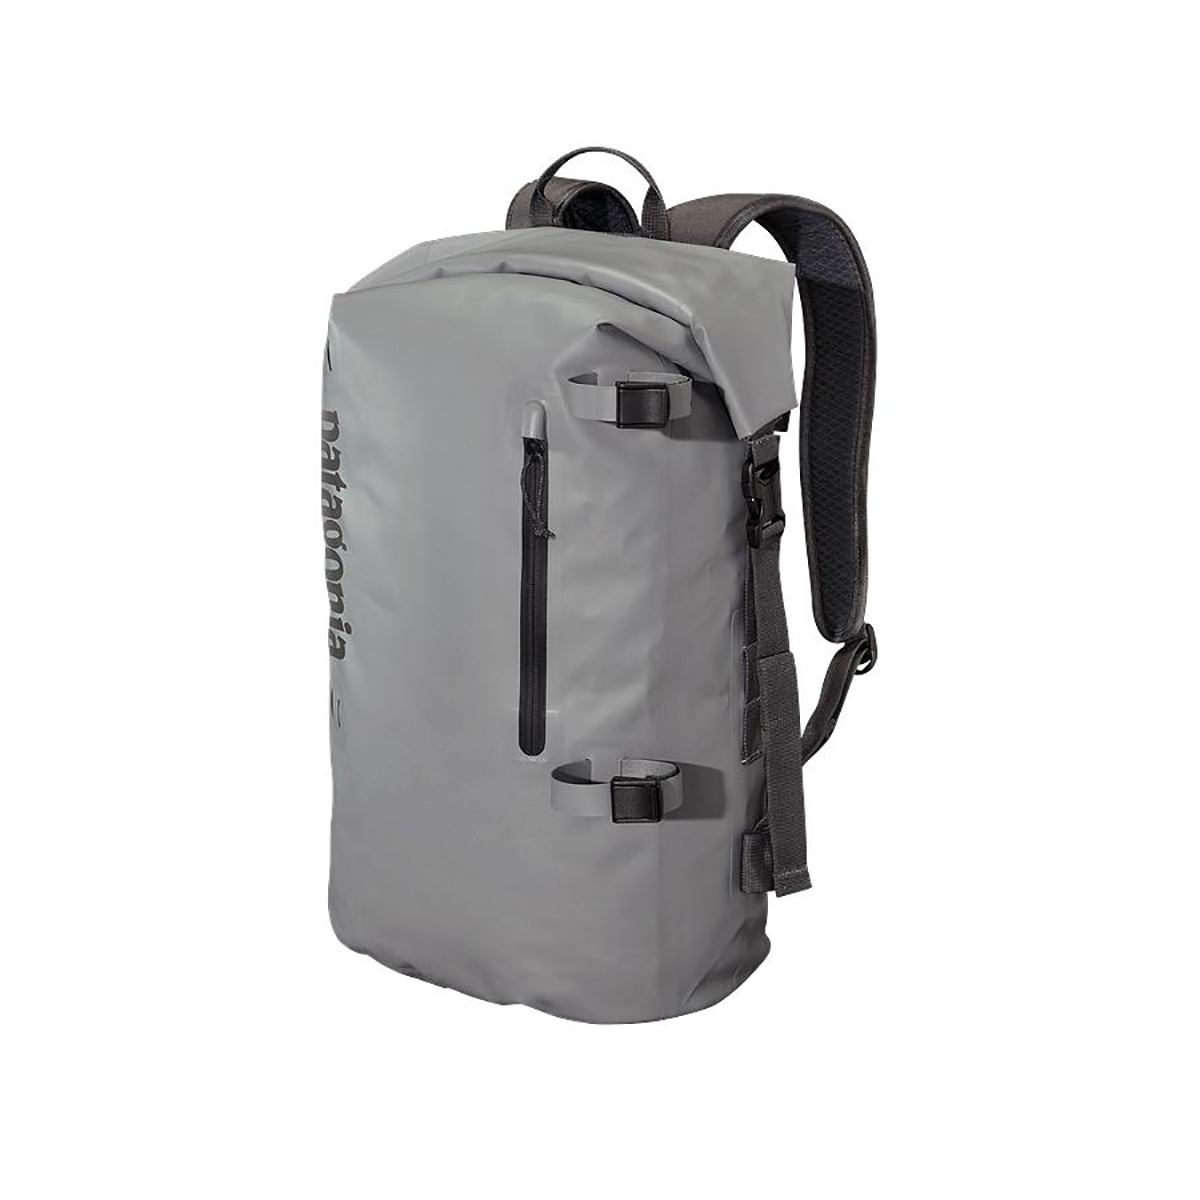 614853149a Patagonia Stormfront™ Roll Top Pack 30L